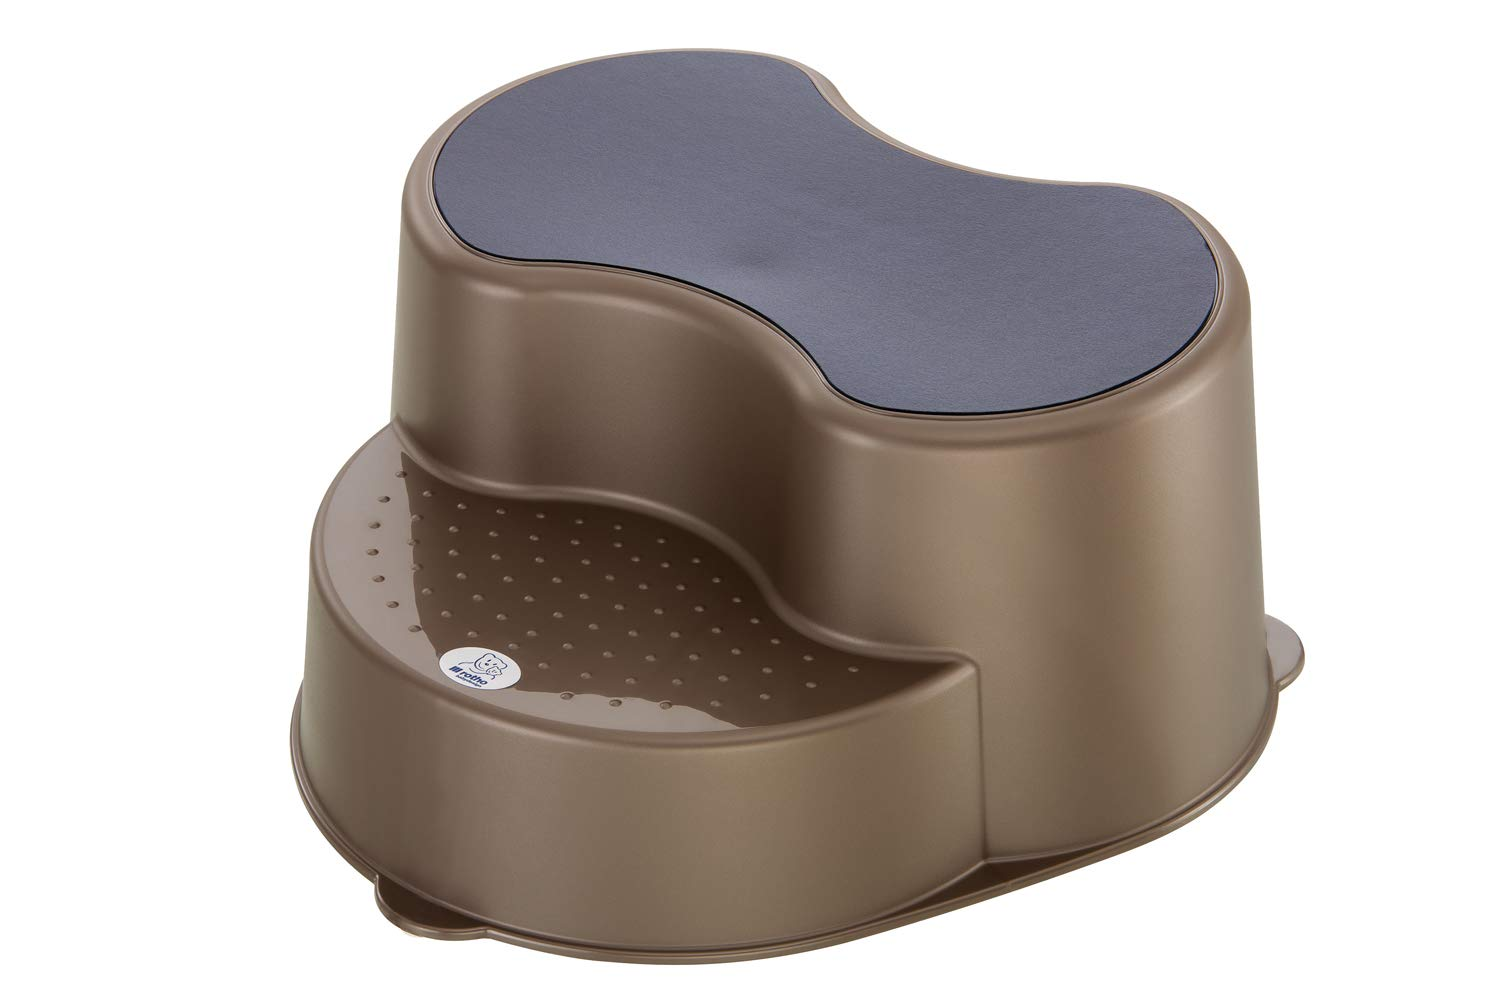 Rotho Babydesign TOP Children's stool, Anti-slip surface, TOP, Taupe Pearl (Brown), 200050207 20005 0207